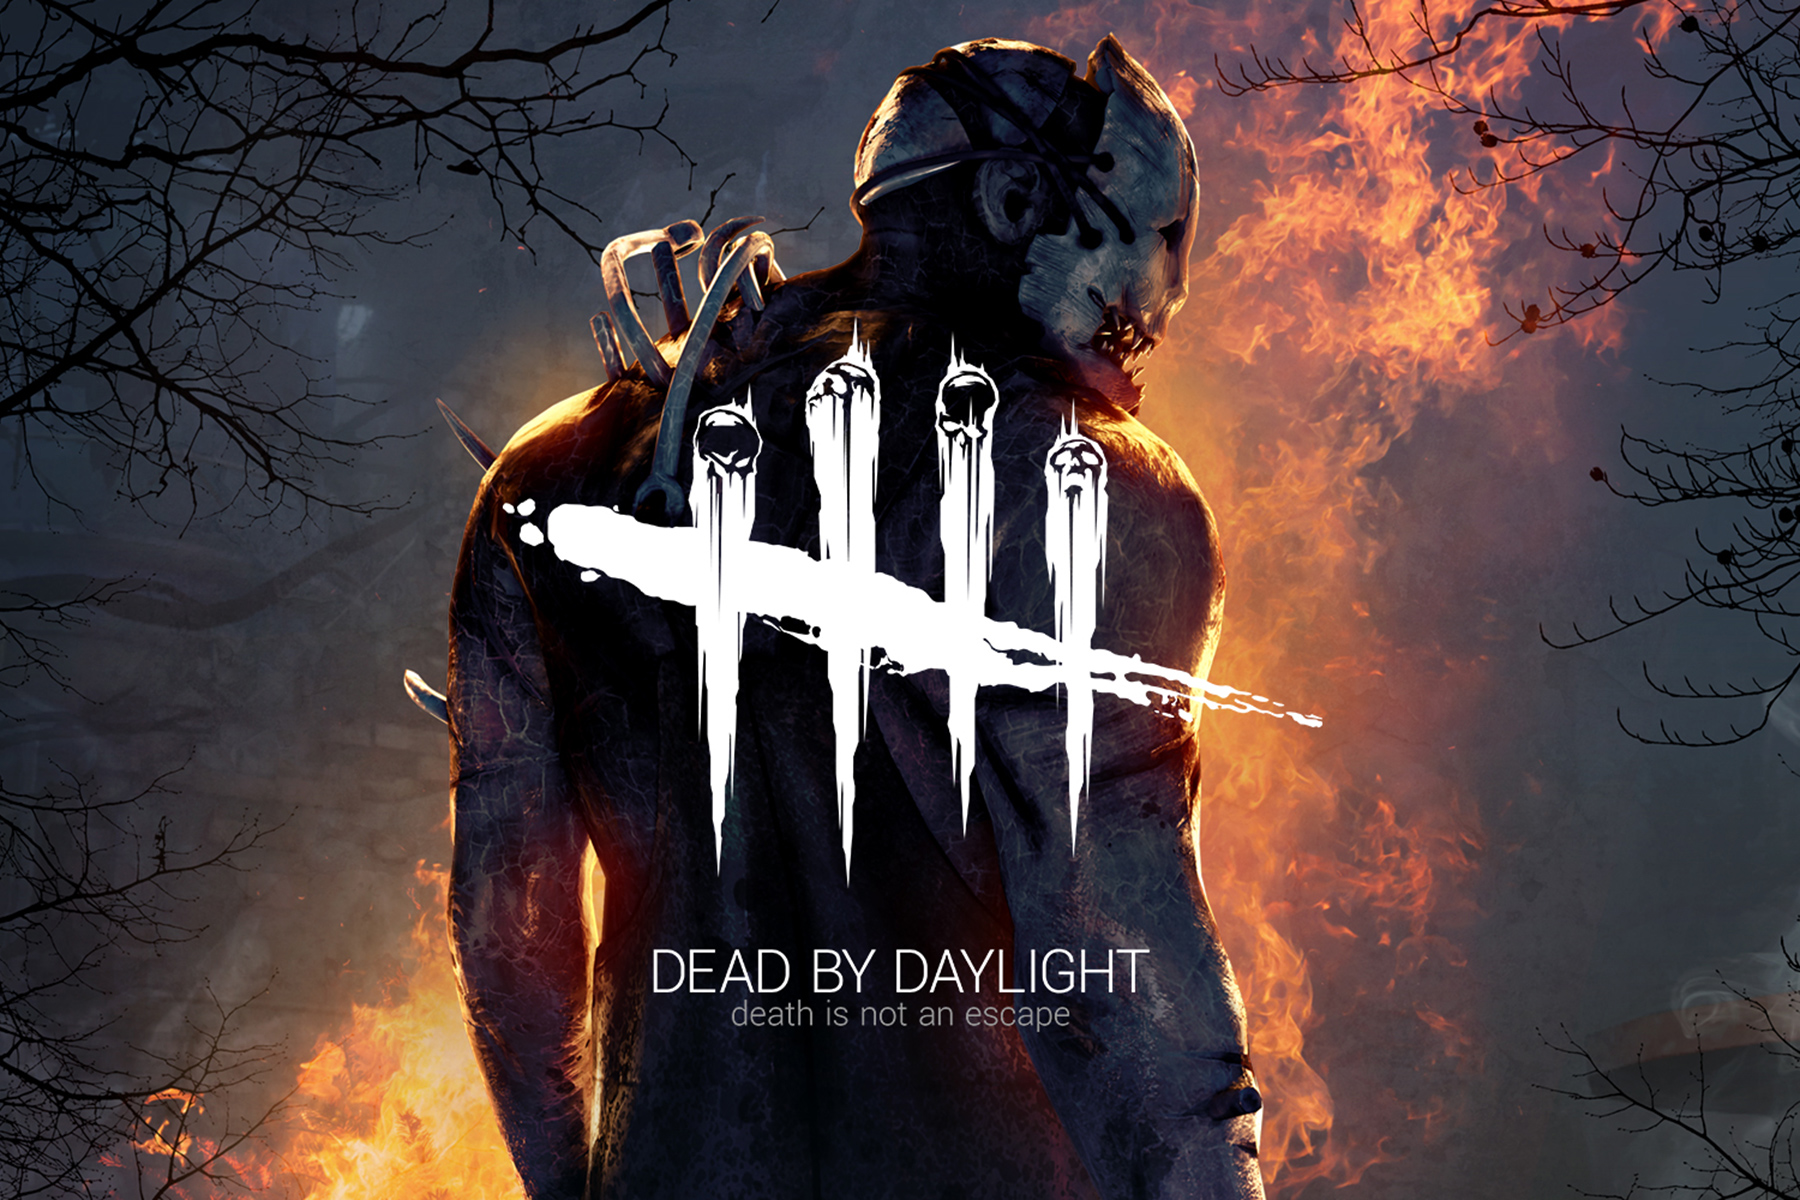 'Dead by Daylight', 'Celeste' and others join Stadia Pro's free game lineup